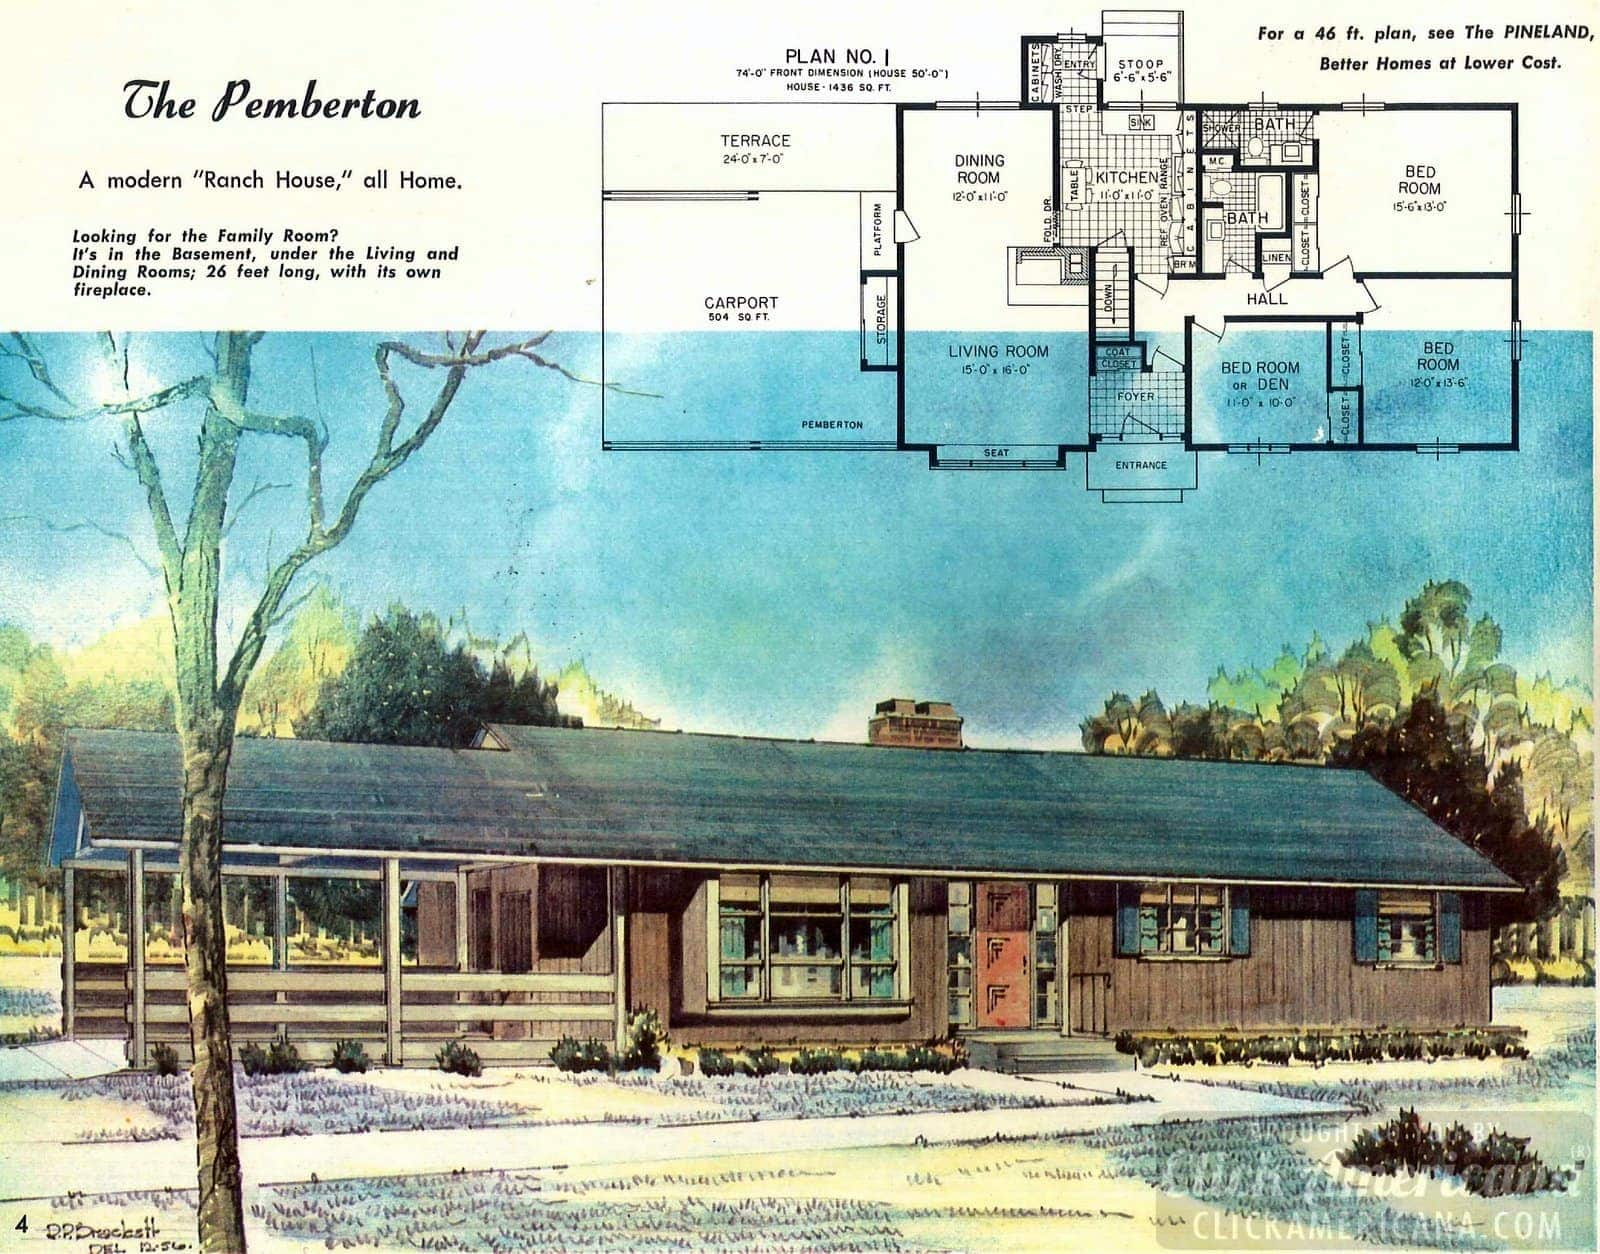 The Pemberton ranch house: Design plans from the '50s